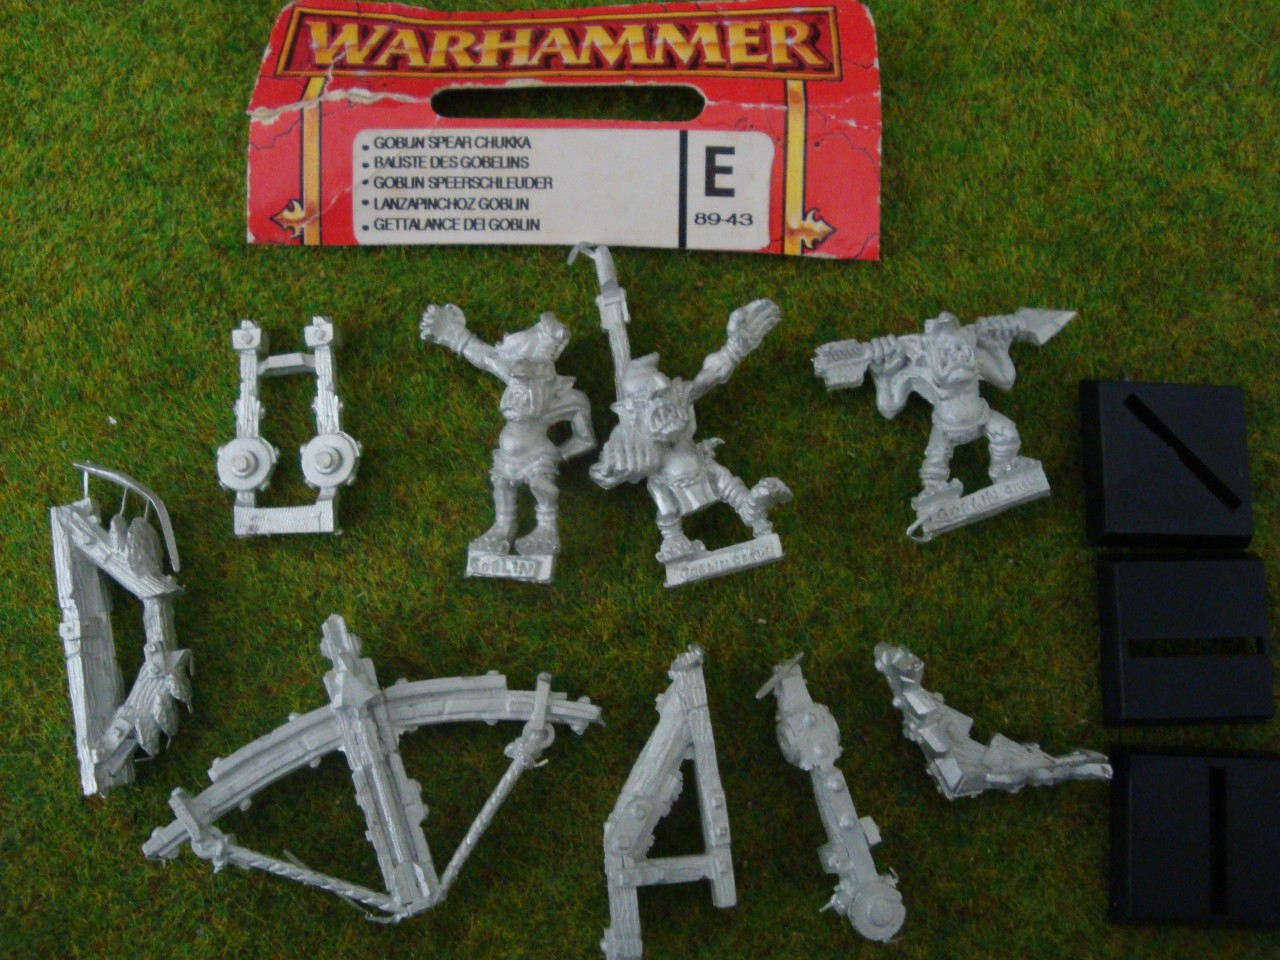 Goblin-Spear-Chukka-MINT-metal-figure-Warhammer-Orcs-Army-Games-Workshop